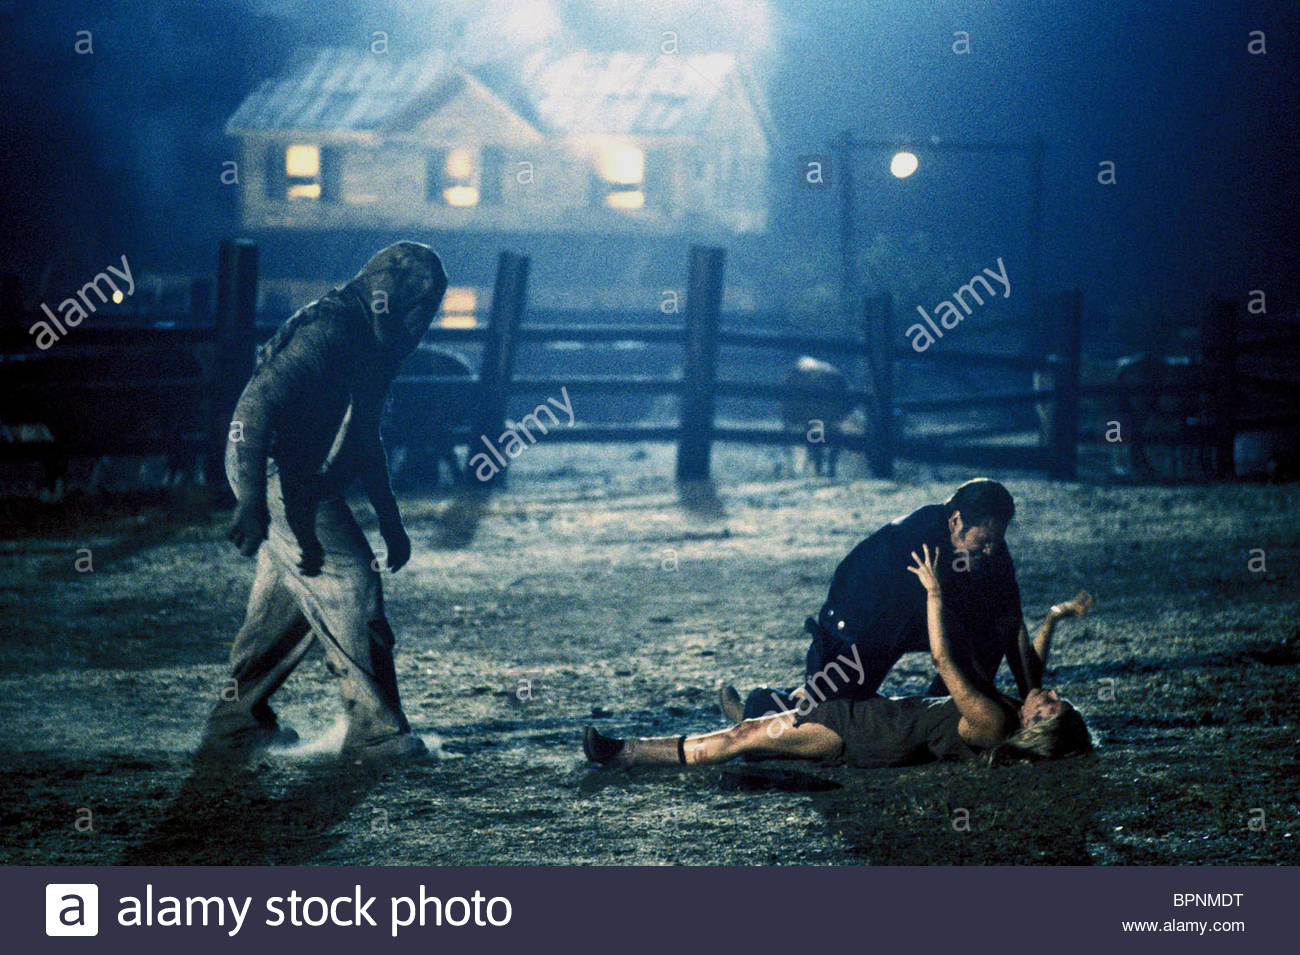 MATTHEW MCGRORY WILLIAM FORSYTHE & SHERI MOON THE DEVIL'S REJECTS : HOUSE OF 1000 CORPSES 2 (2005) - Stock Image